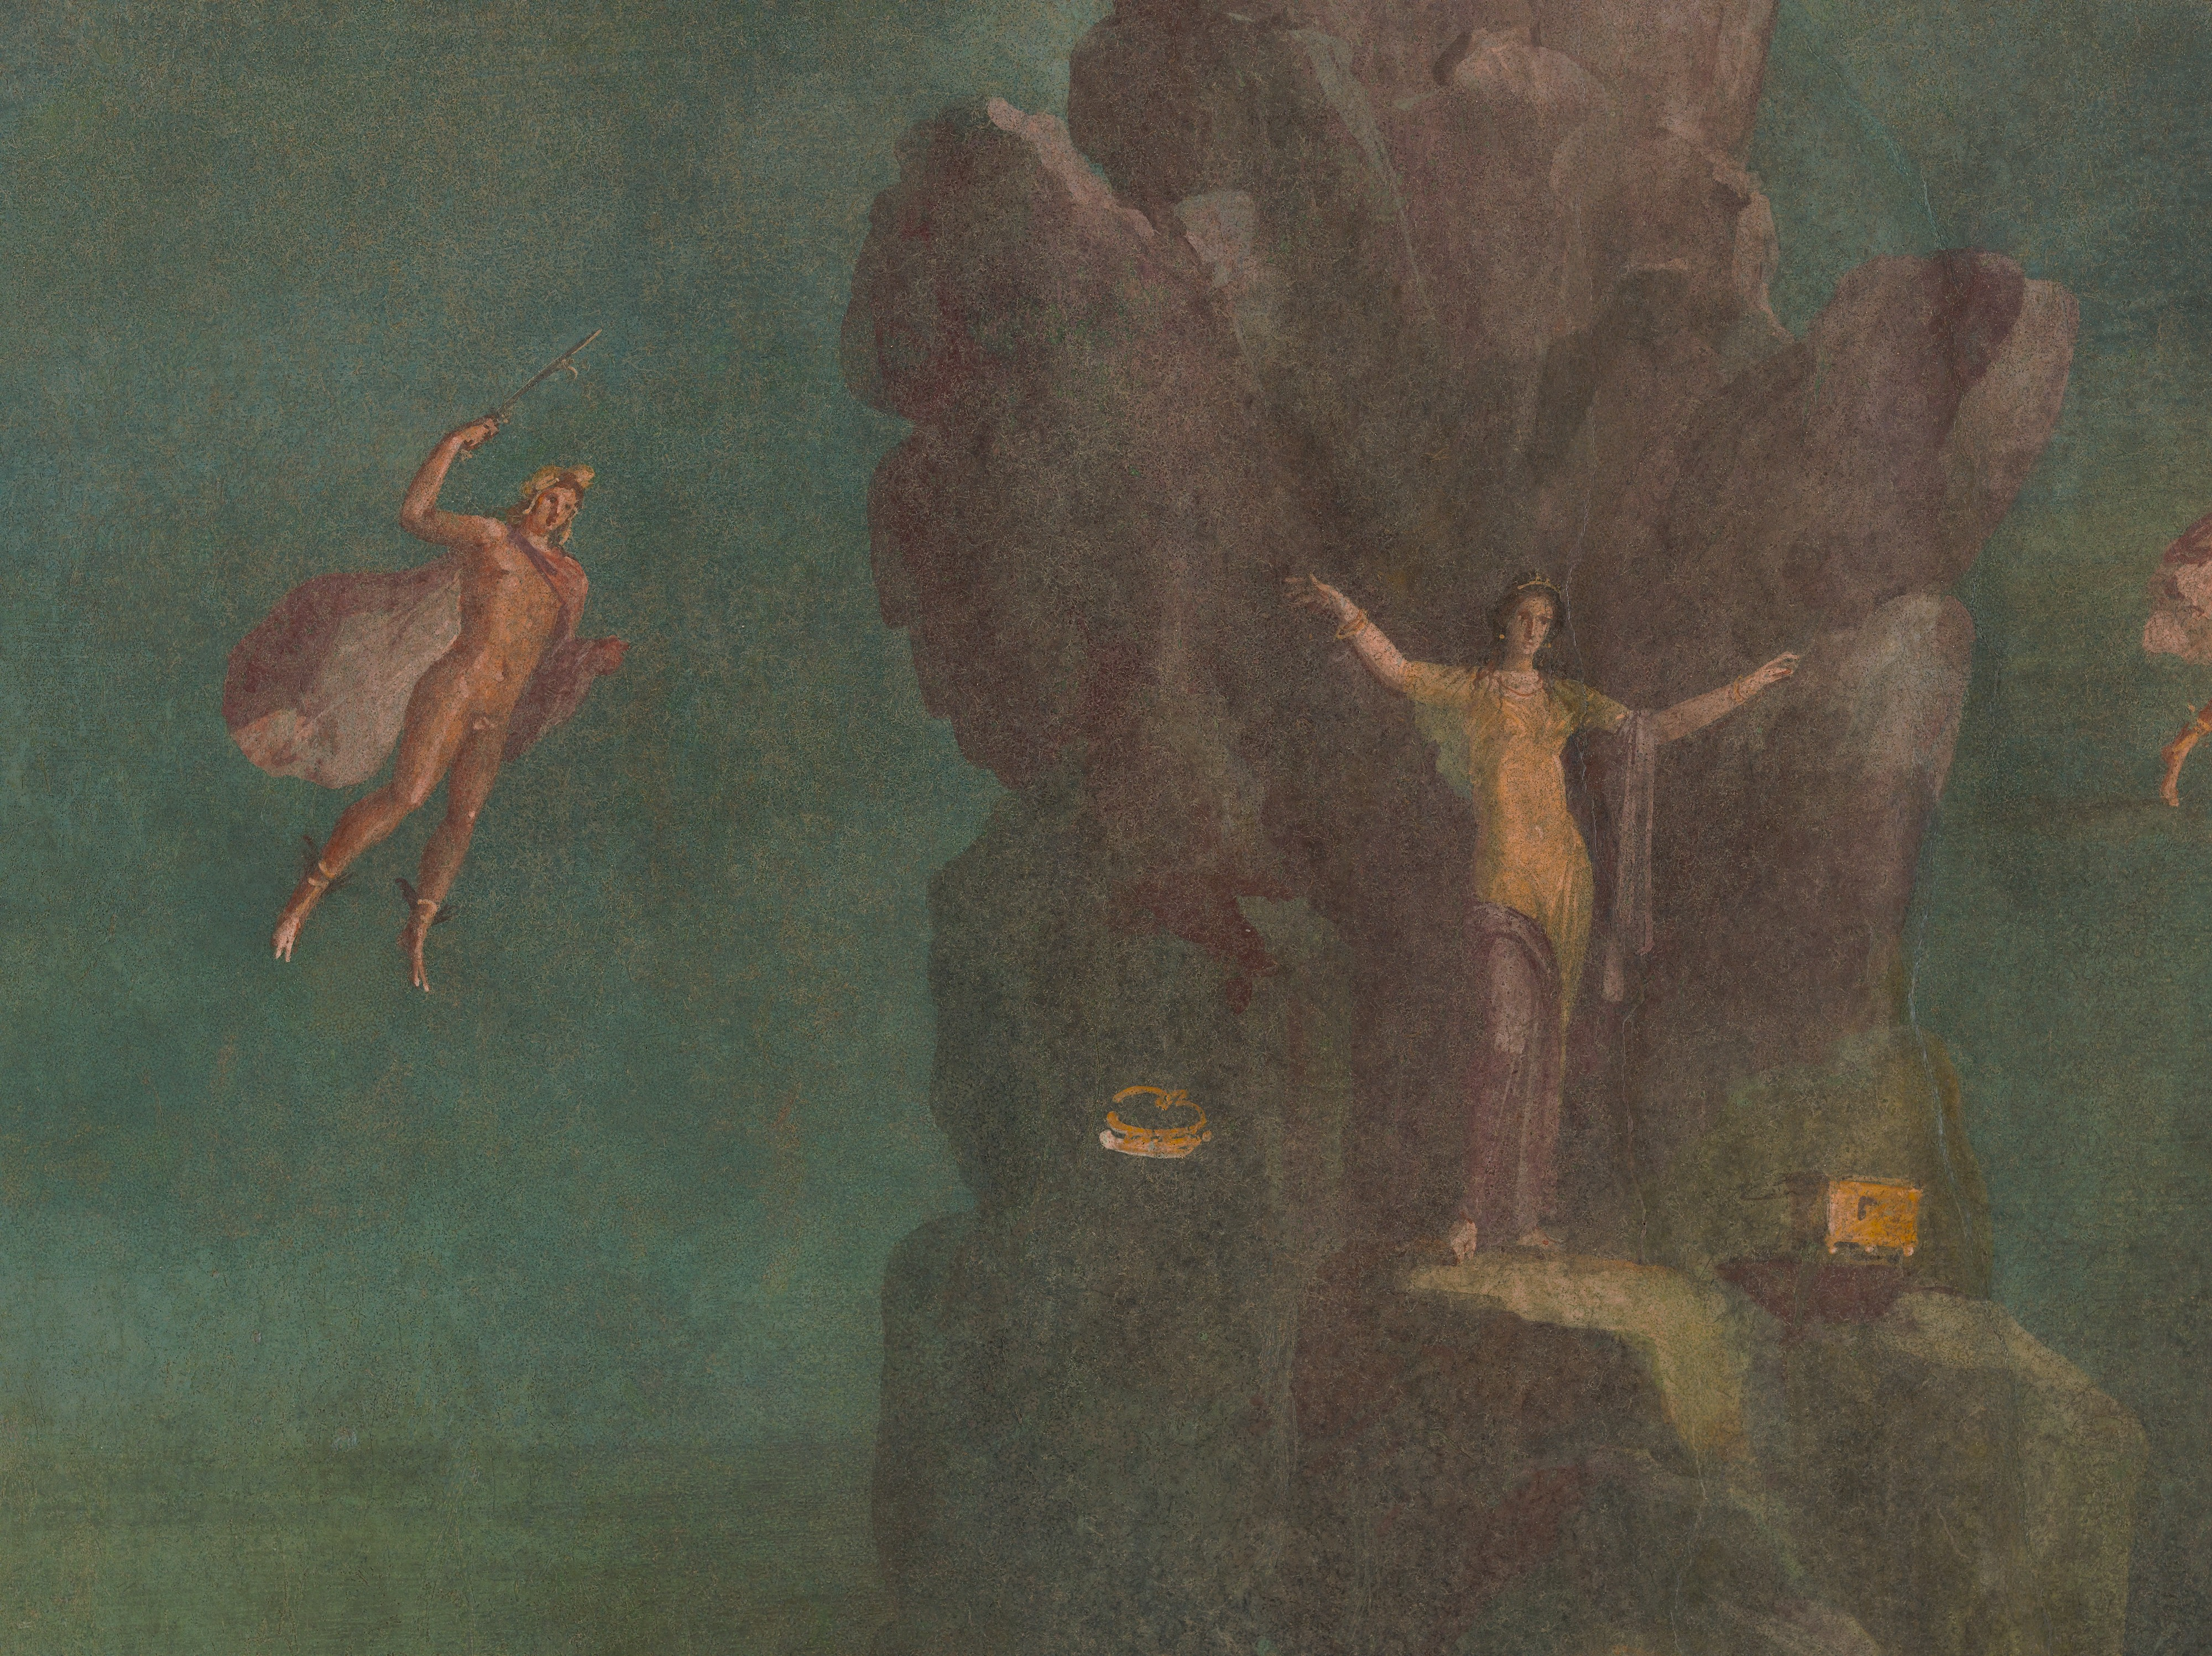 https://upload.wikimedia.org/wikipedia/commons/6/6c/Wall_painting-_Perseus_and_Andromeda_in_landscape%2C_from_the_imperial_villa_at_Boscotrecase_MET_DP143696.jpg